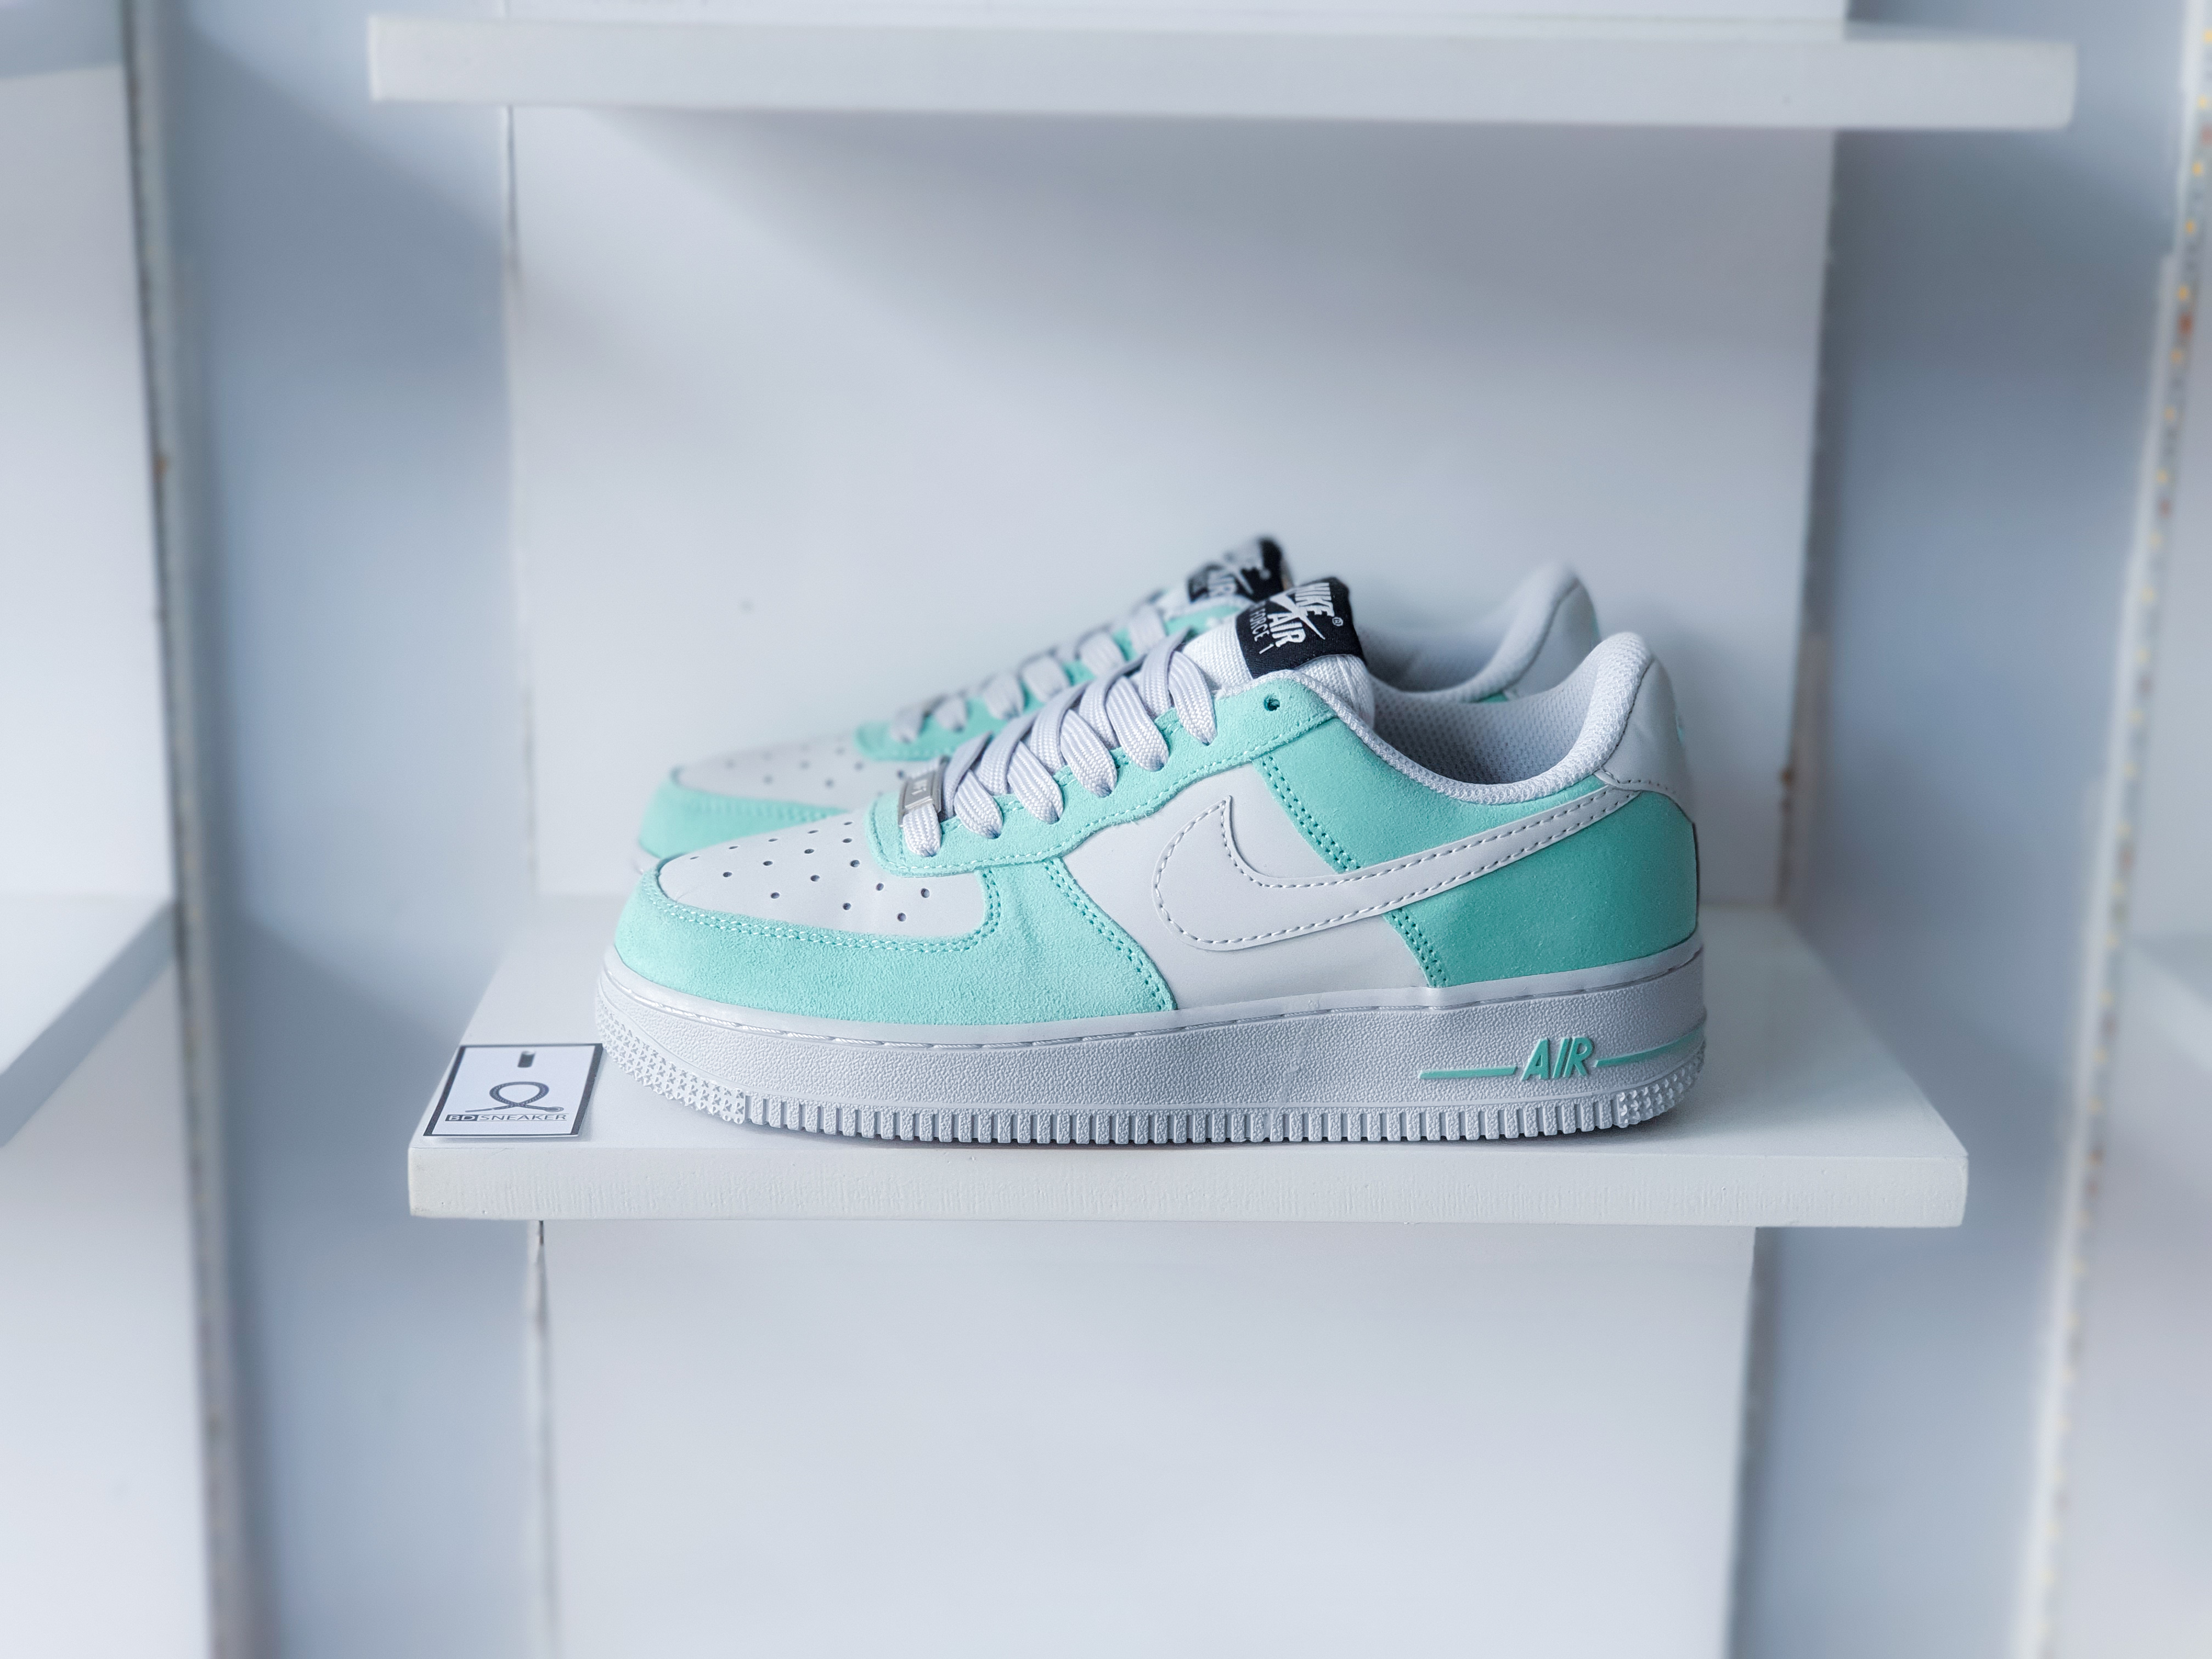 Nike Air Force 1 Mint Af1 Xam Xanh There are 78 nike air force 1. bd sneaker